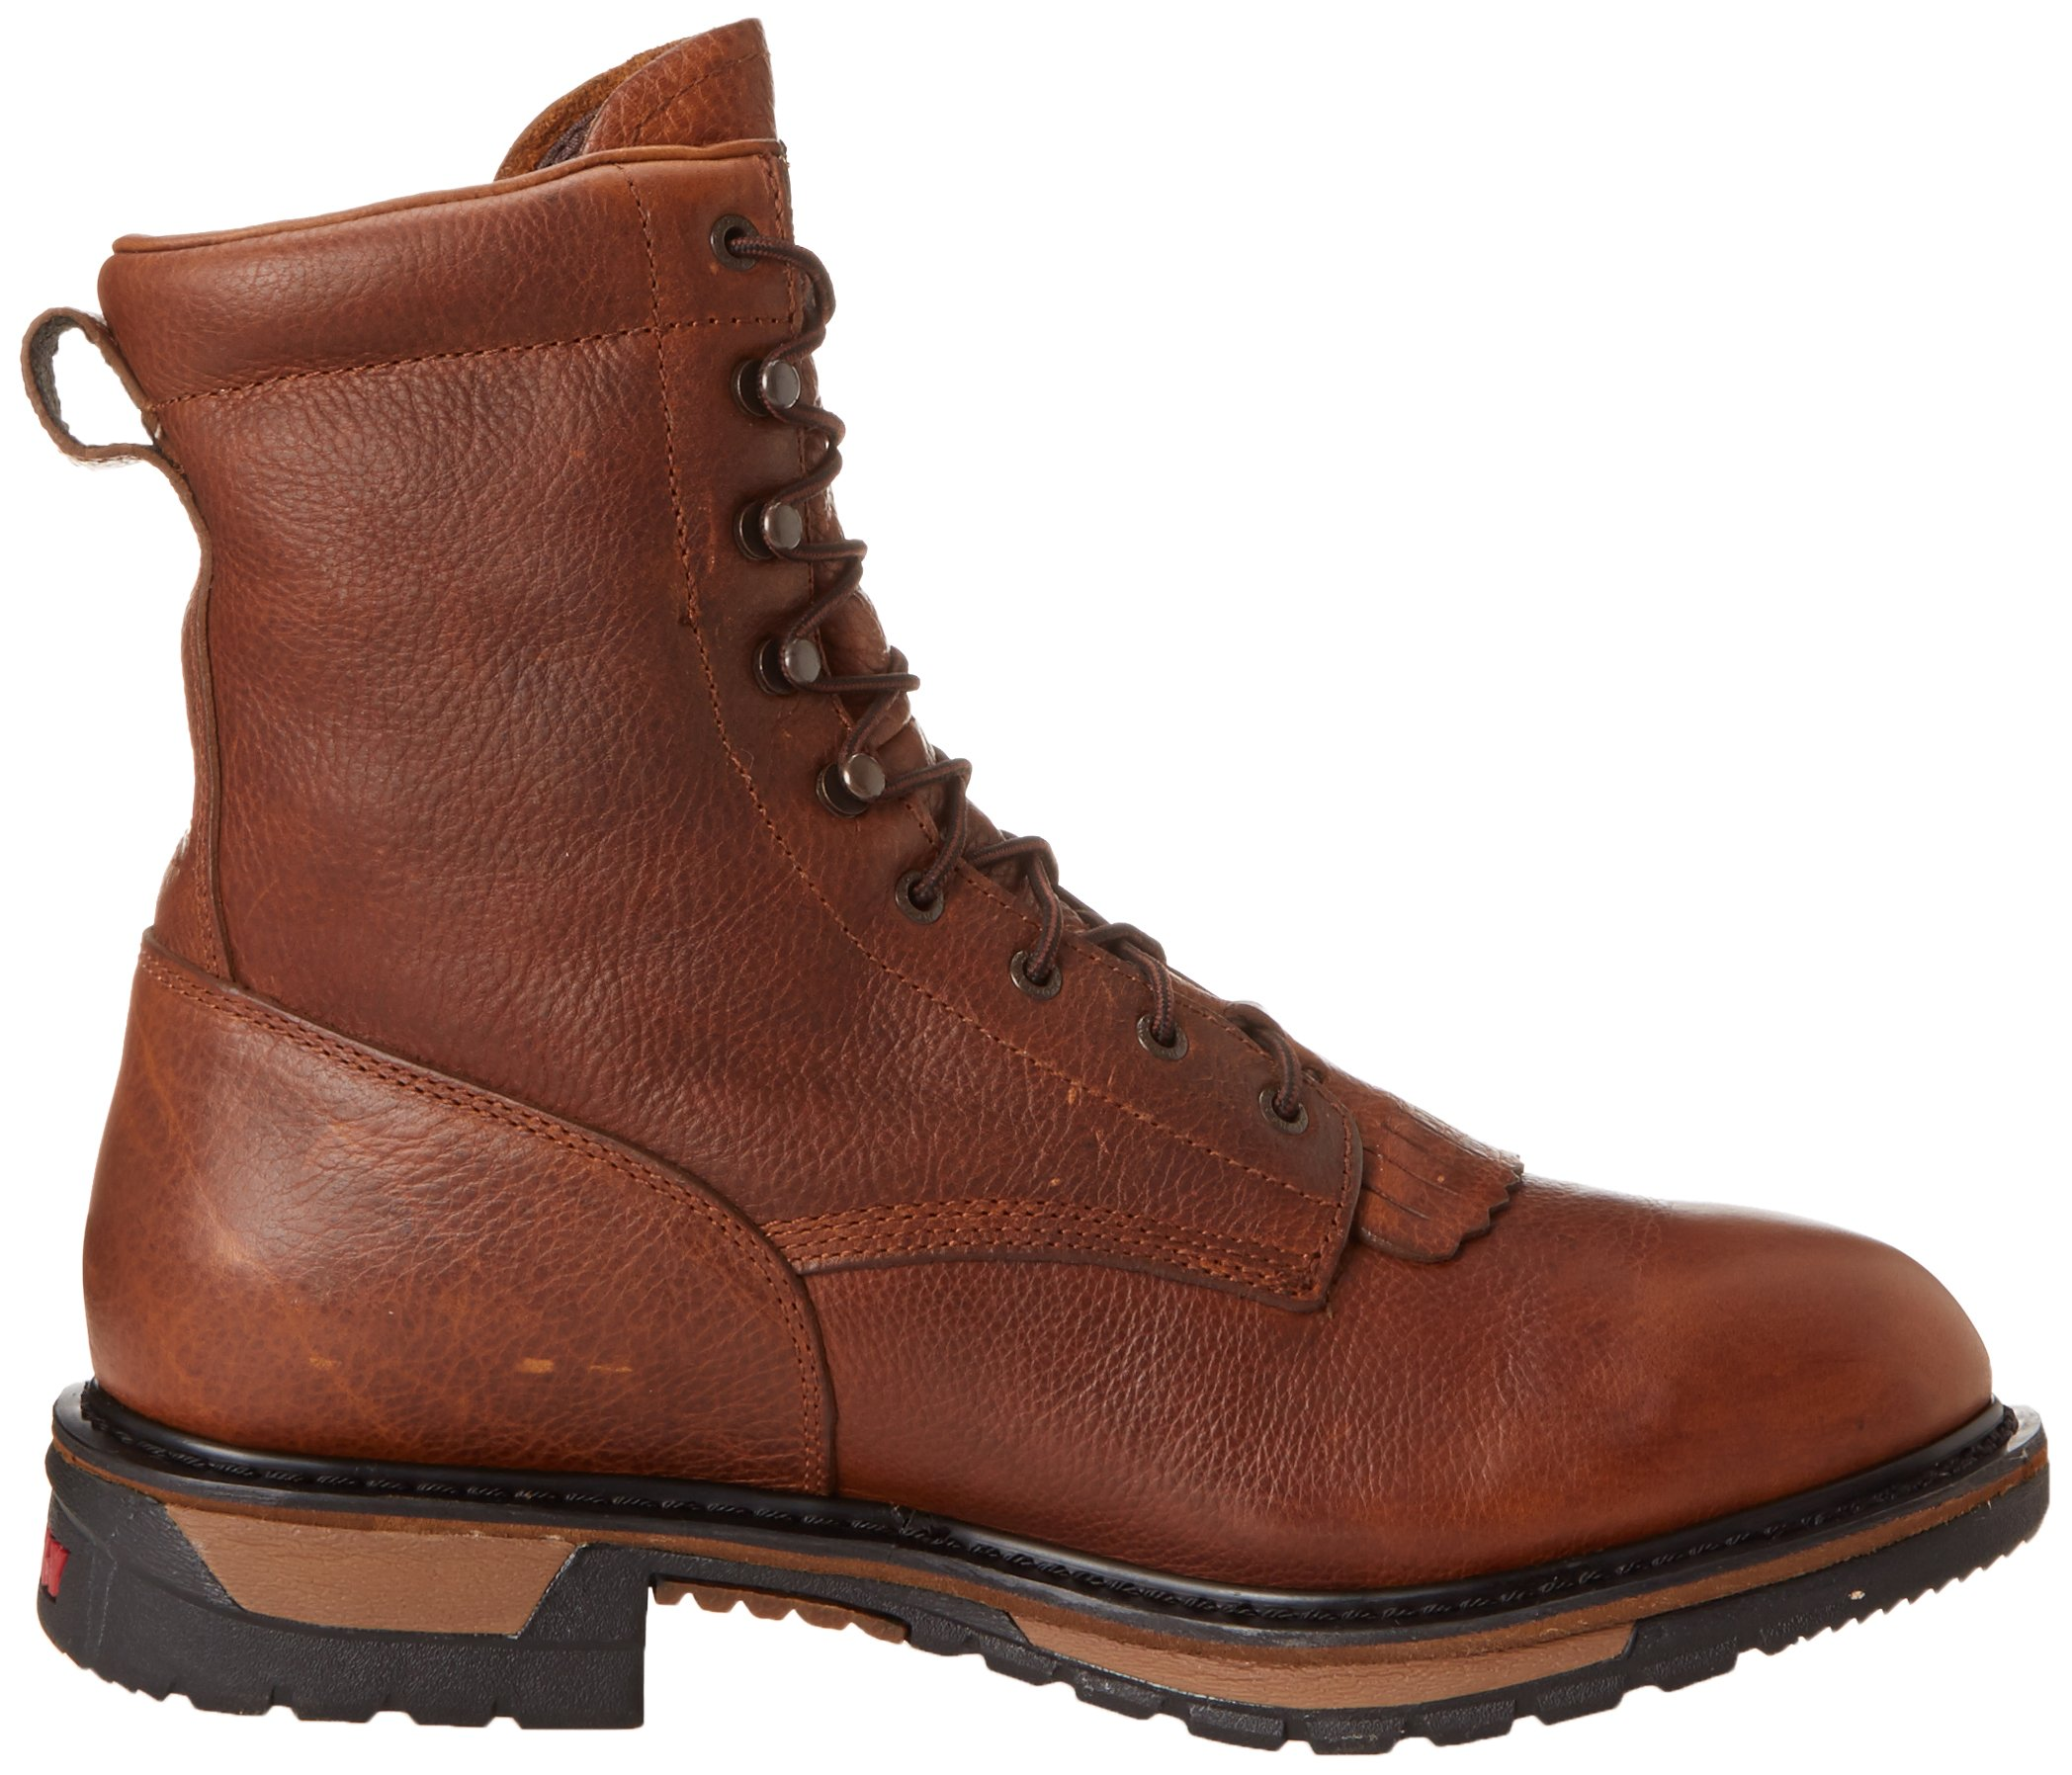 Men's Rocky 8'' EH Ride Lacer Work Boots BROWN 7.5 W by Rocky (Image #6)